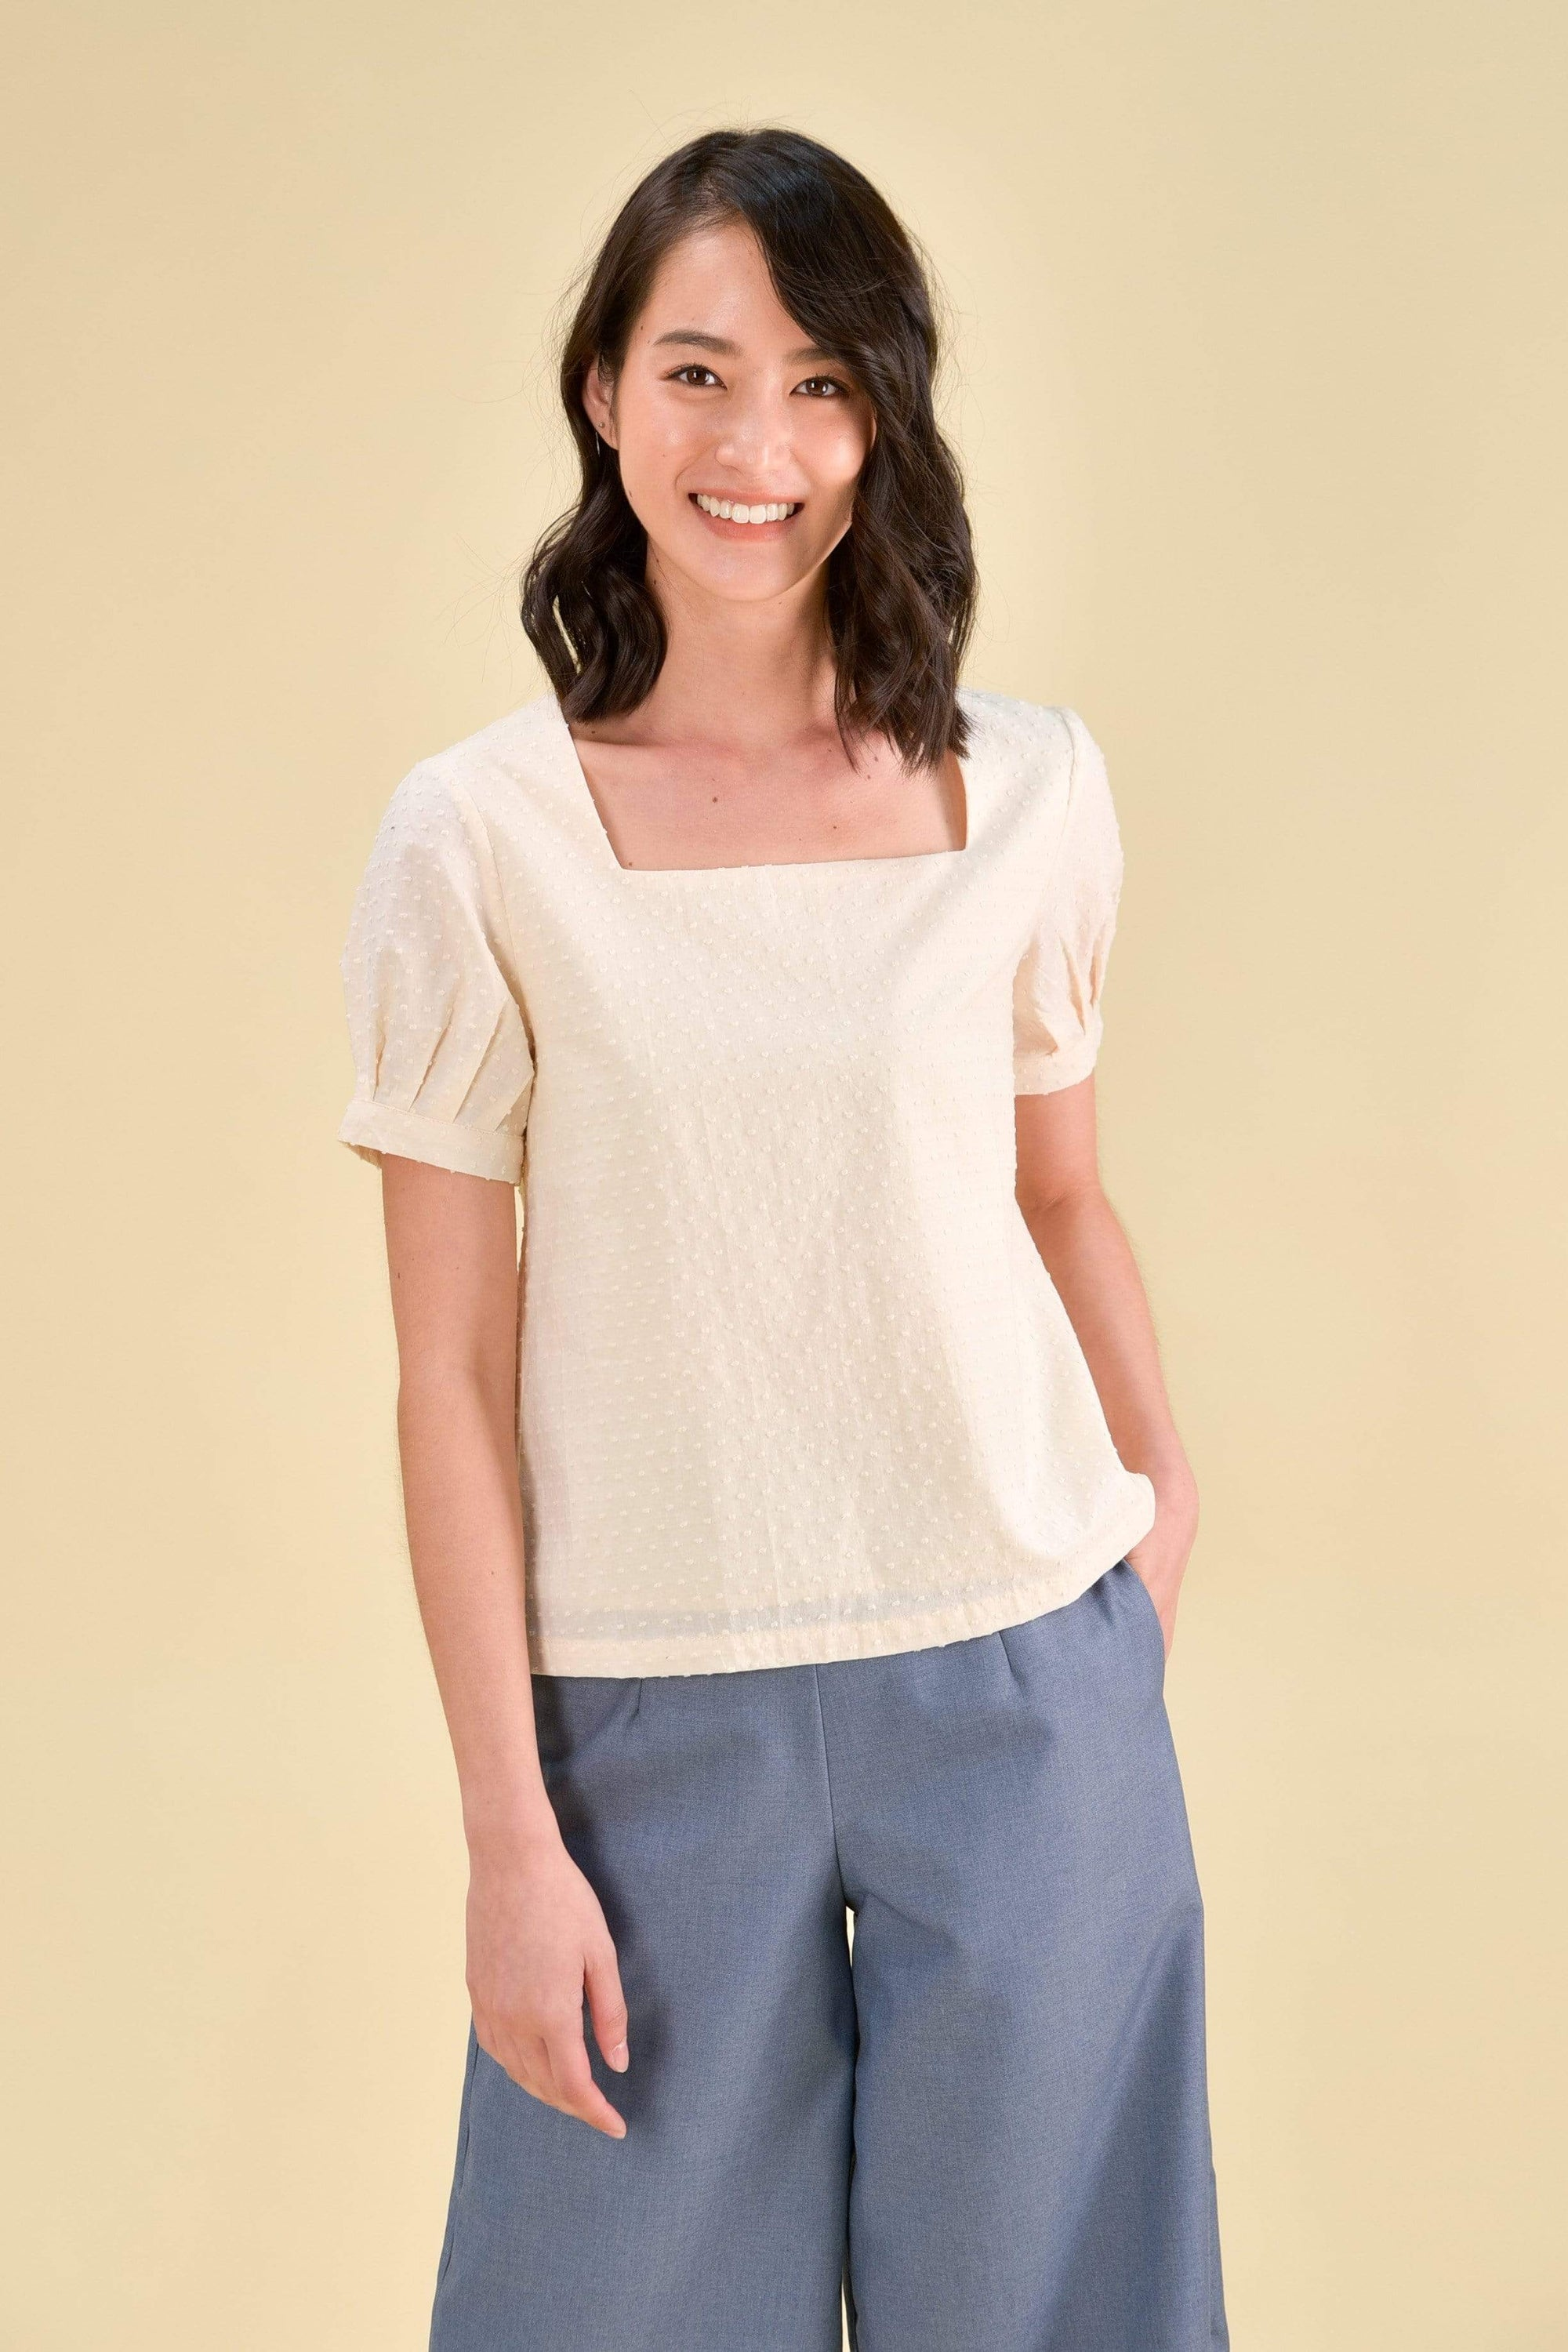 RENEE SLEEVED SWISS-DOT TOP IN CREAM